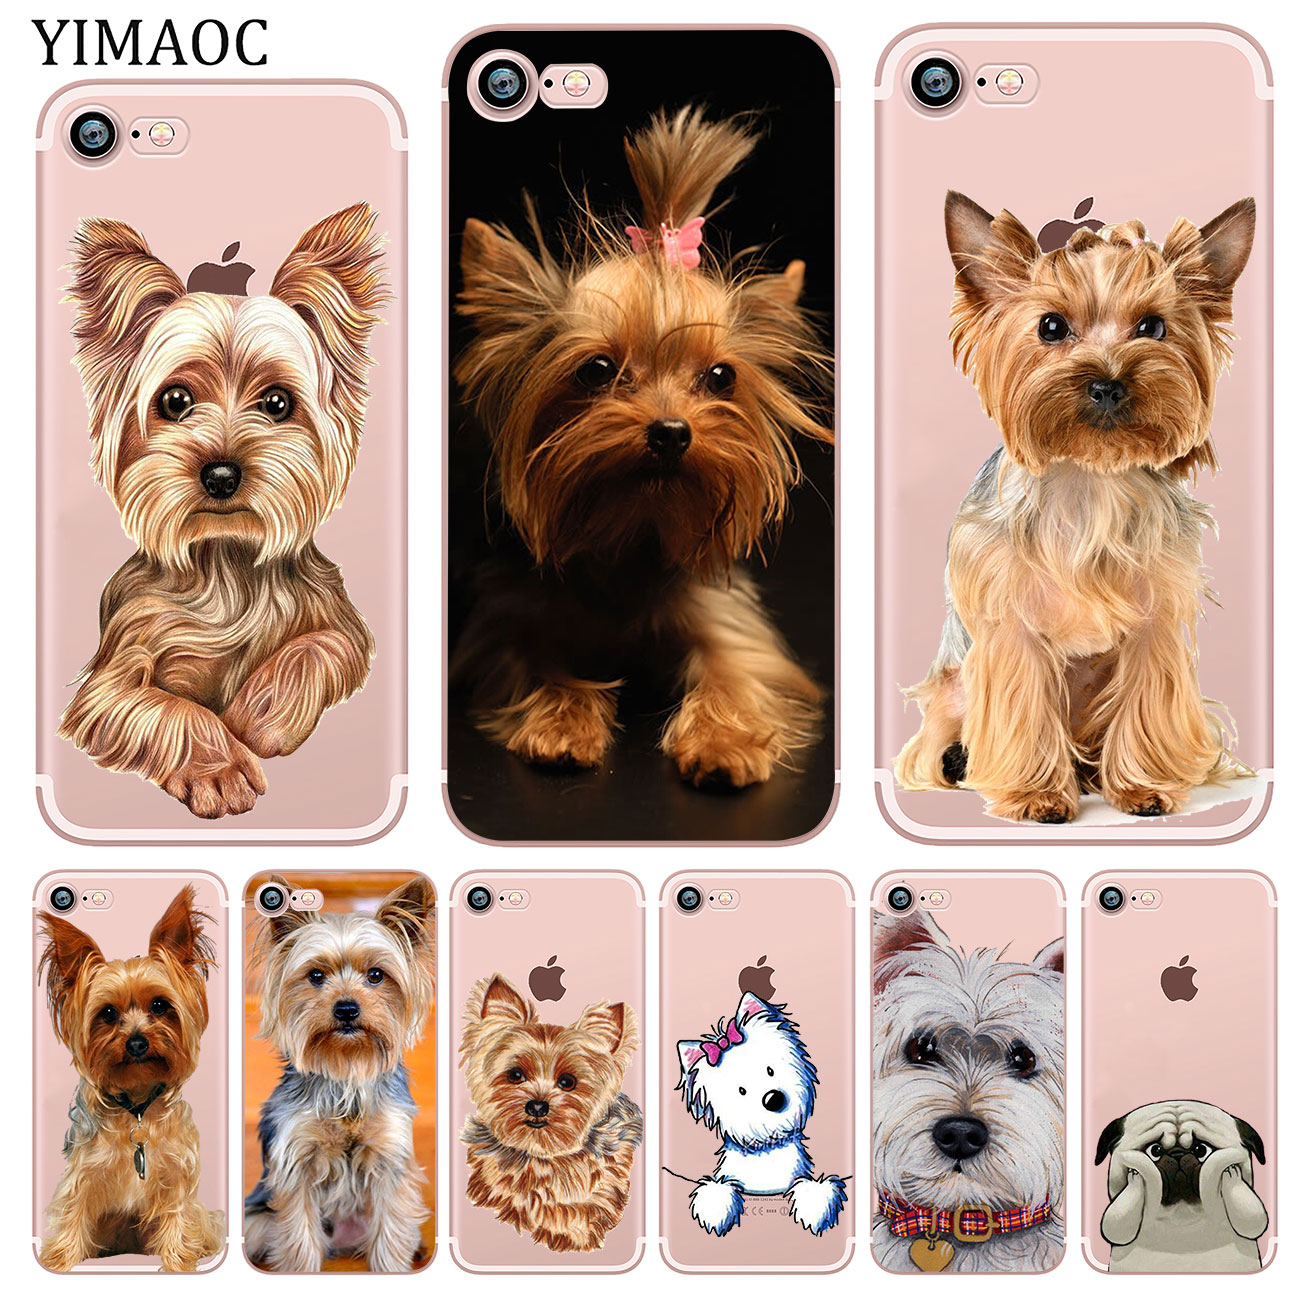 YIMAOC yorkshire terrier dog puppy Soft Silicone Phone Shell Case for iPhone XR X XS 11 Pro Max 5 5S SE 6 6S 7 8 Plus 10 Cover